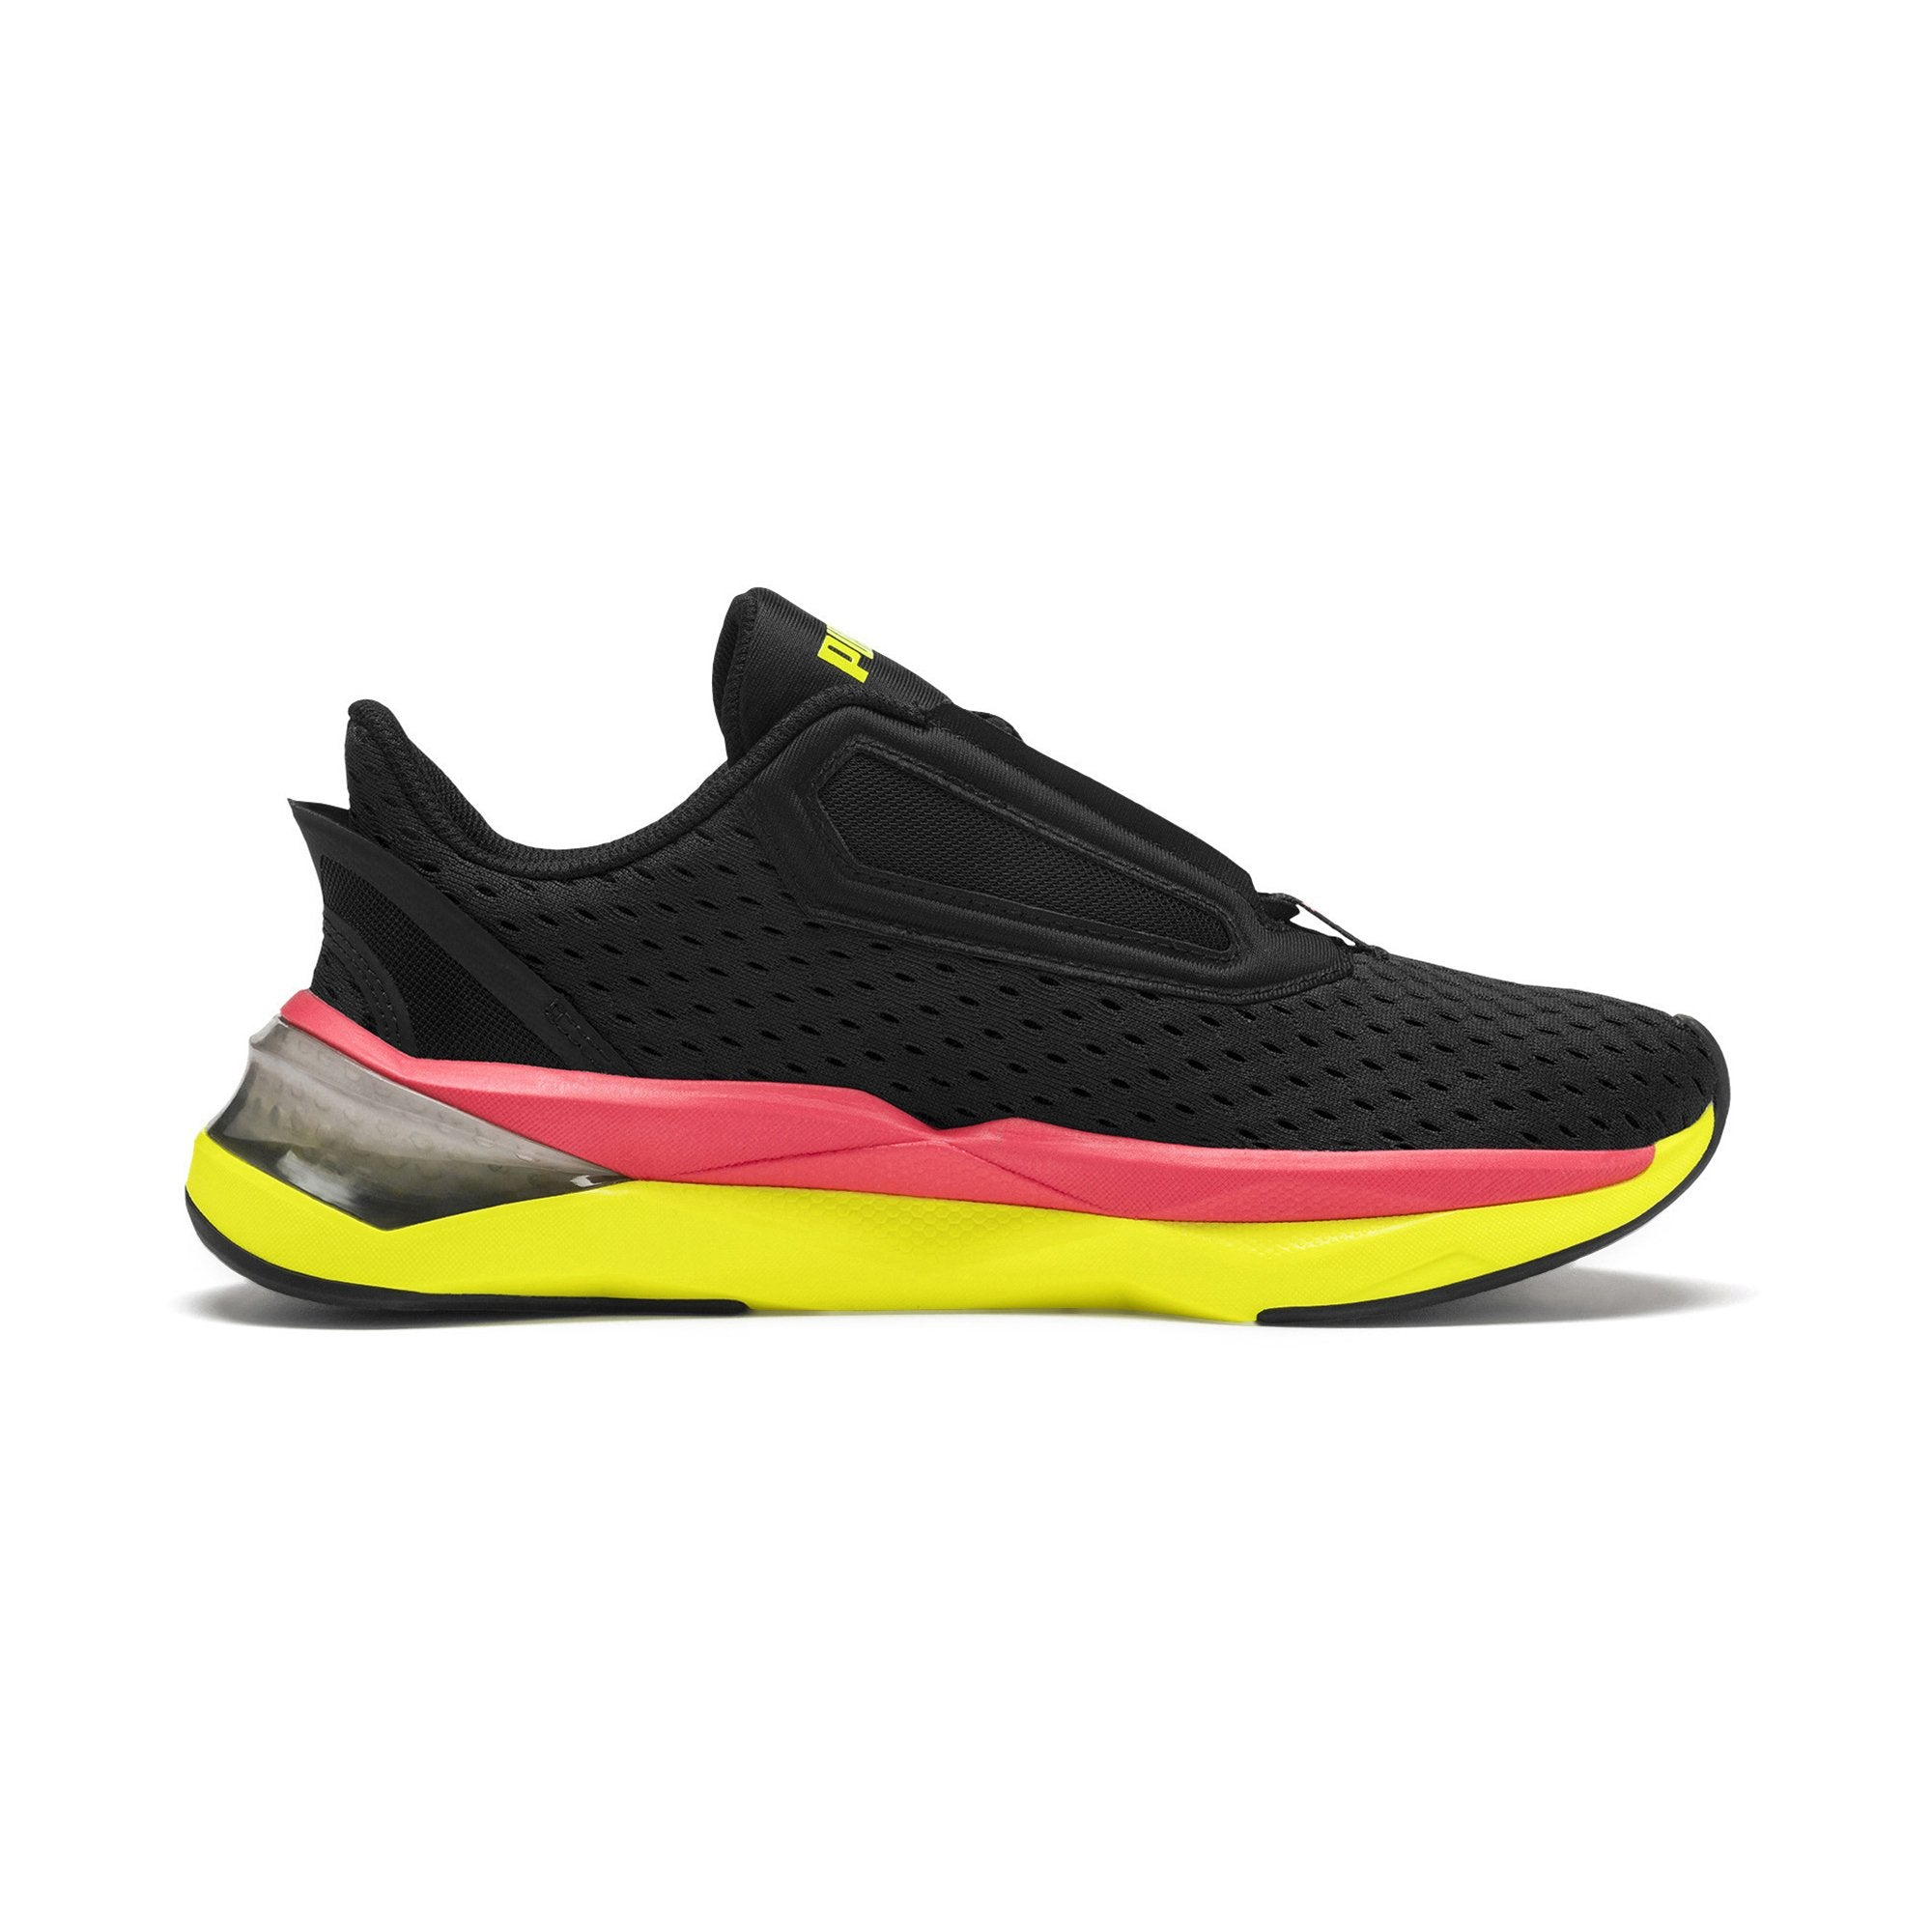 les ventes chaudes 60be1 4a285 Buy Puma Women Lqdcell Shatter XT Training Shoes Online in Singapore |  Royal Sporting House